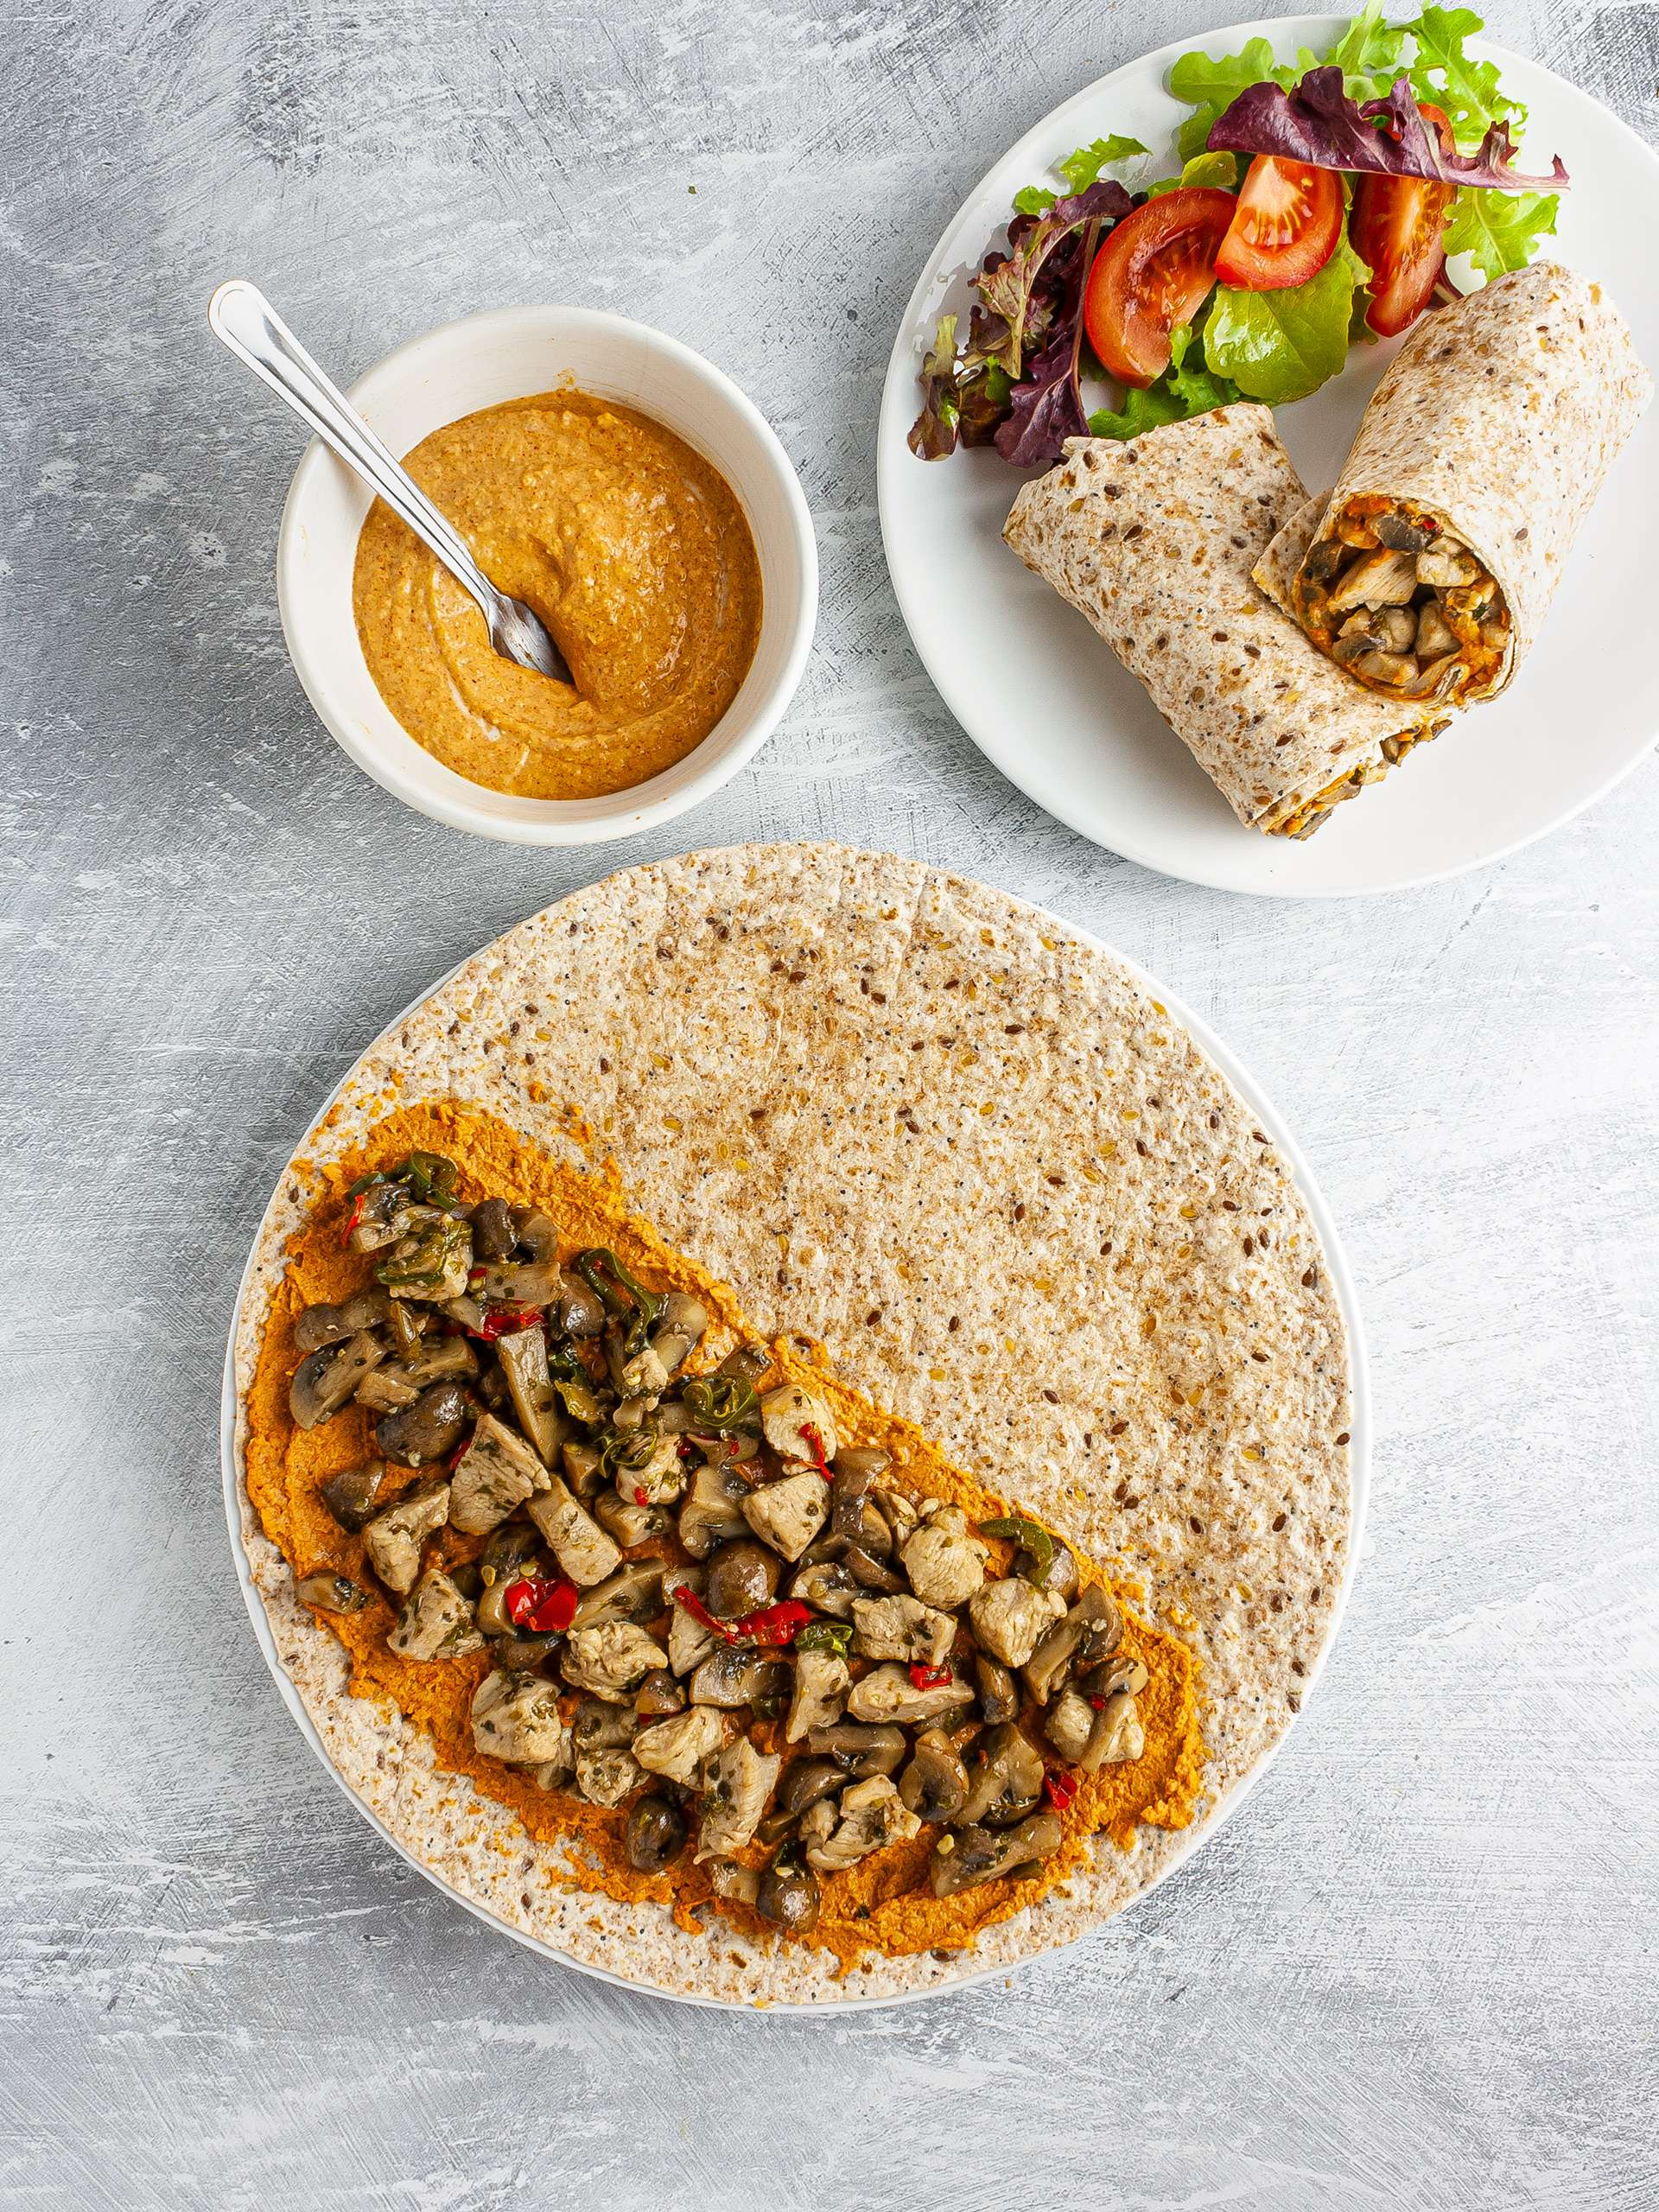 Wrap with paprika hummus, mushroom, and chicken served with a side salad